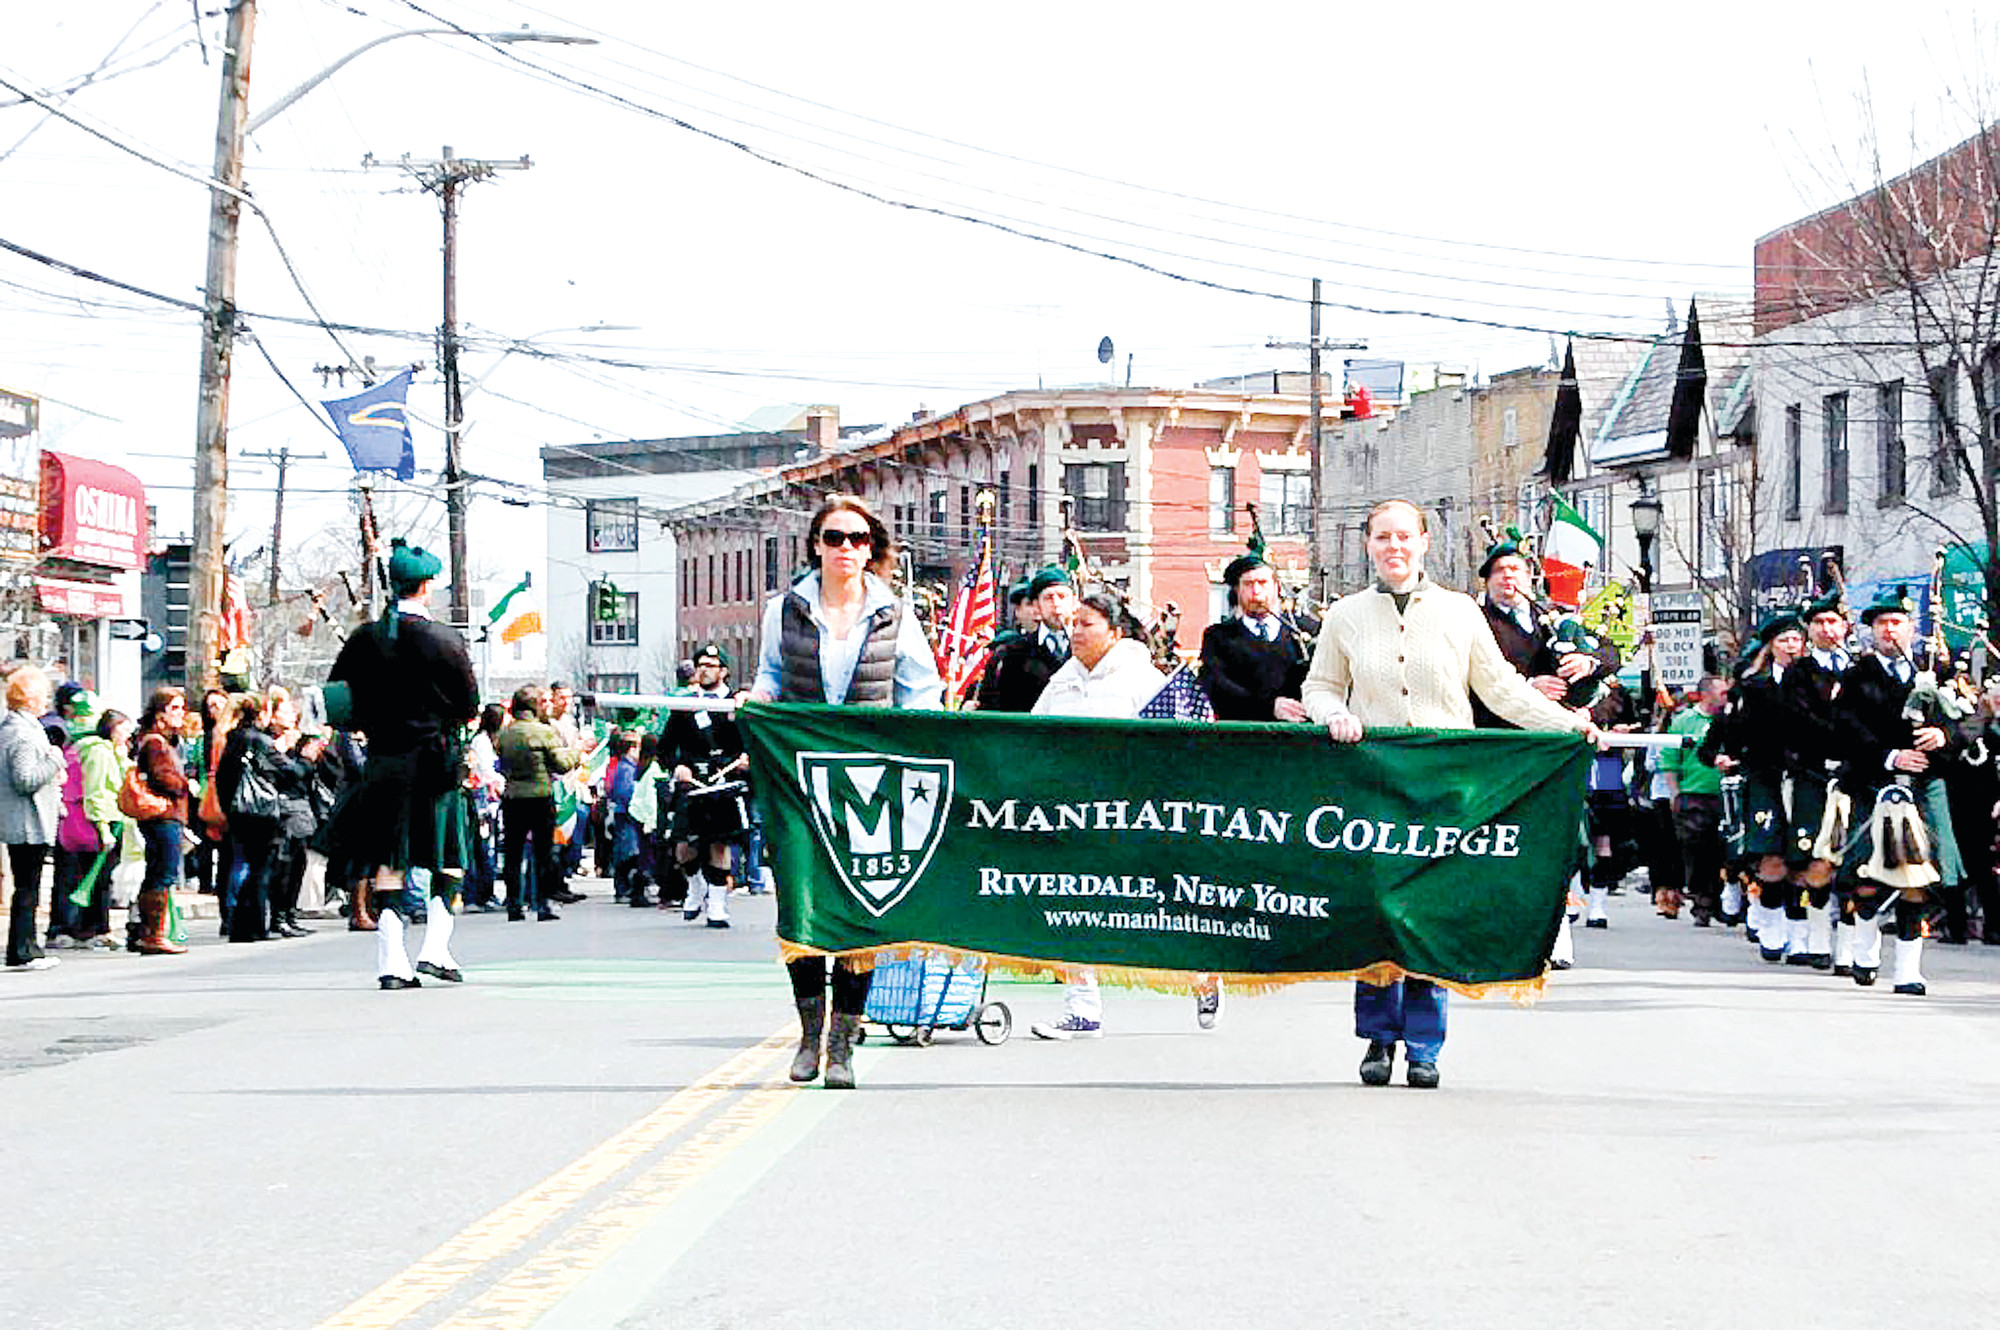 Pipers from Manhattan College marched proudly down McLean Avenue in Yonkers on Saturday, March 22, in the city's 59th annual St. Patrick's Day parade.